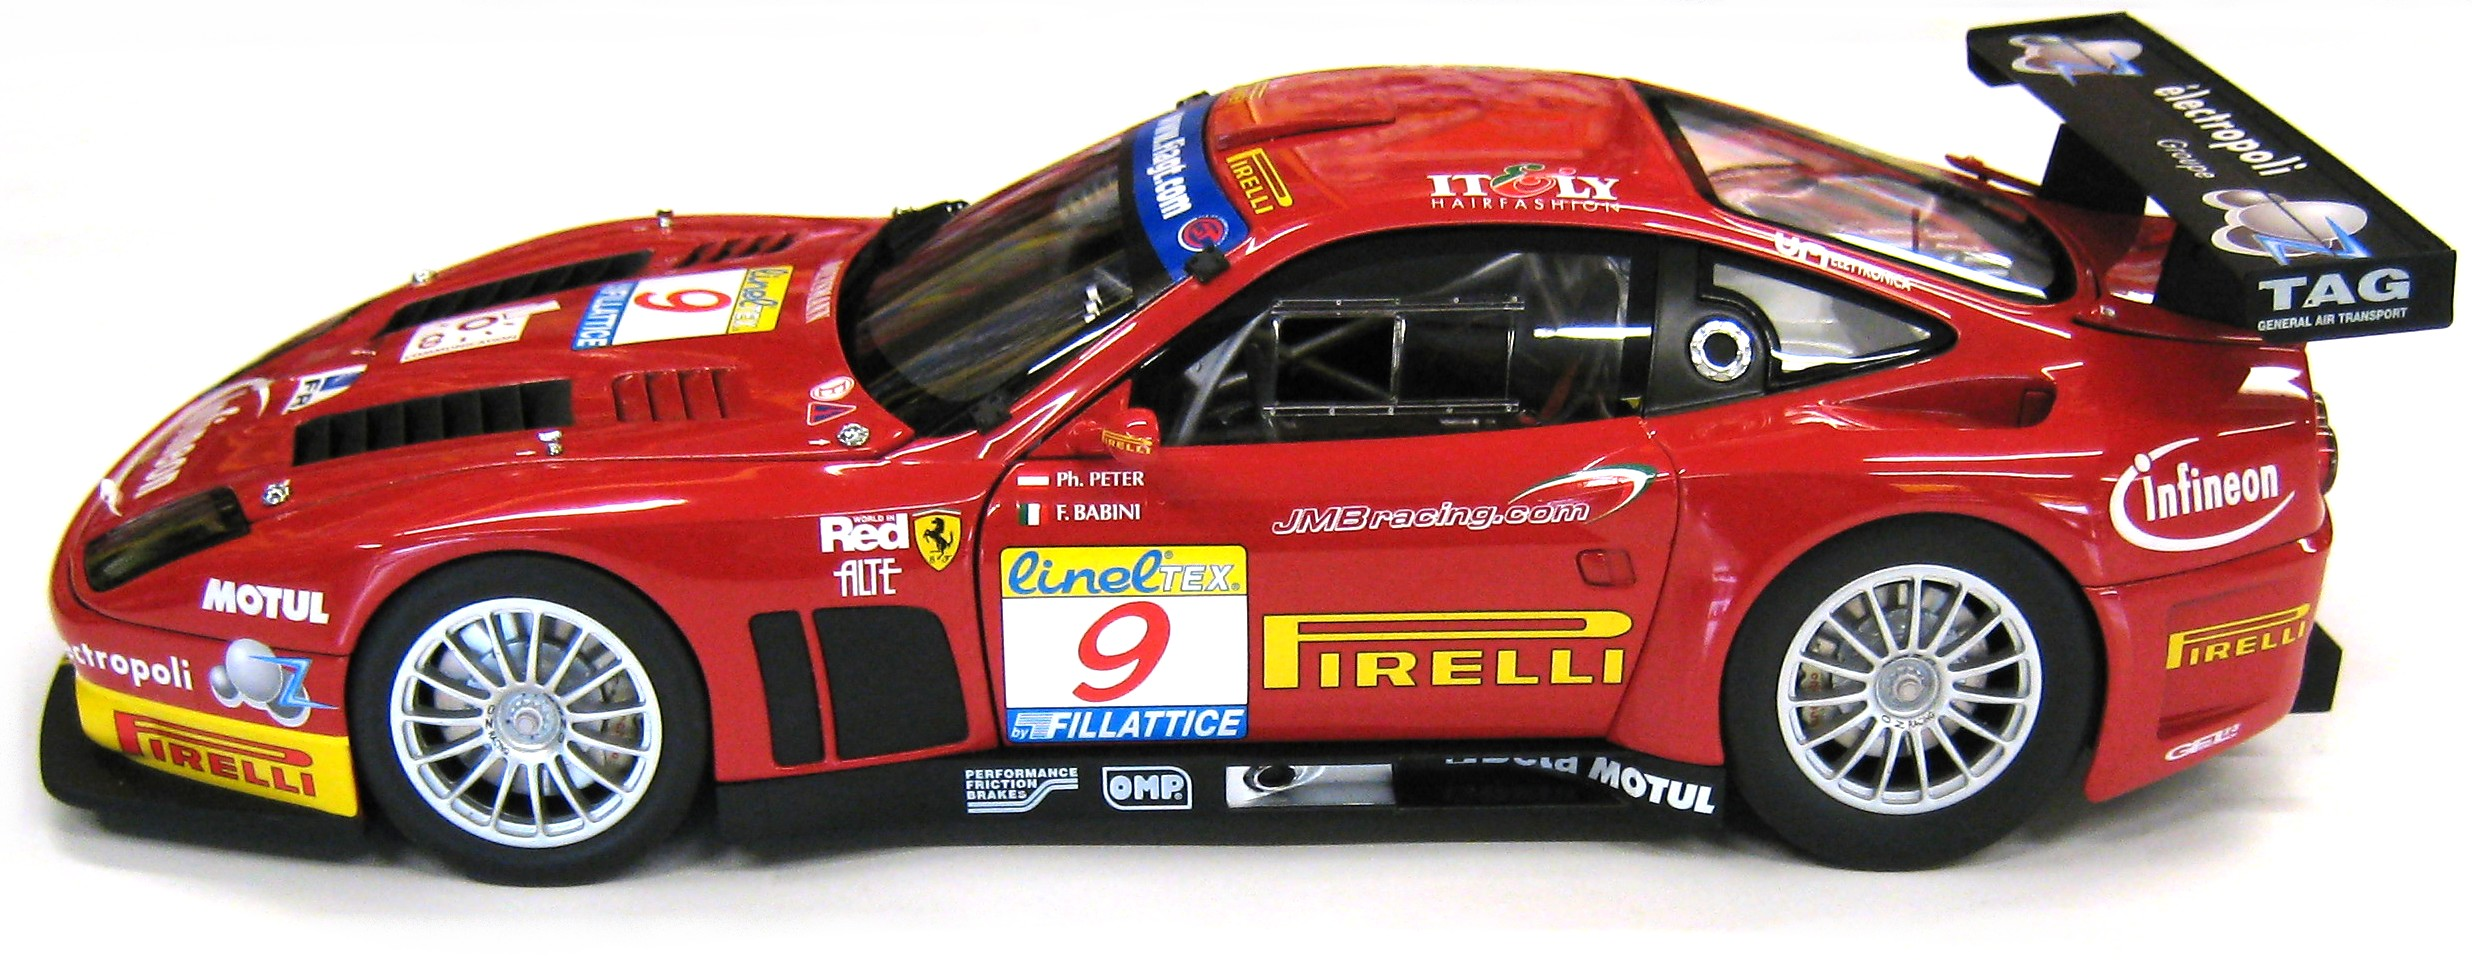 KYOSHO 1/18 2003 FERRARI 575 GTC #9 TEAM JMB WINNER ESTORIL